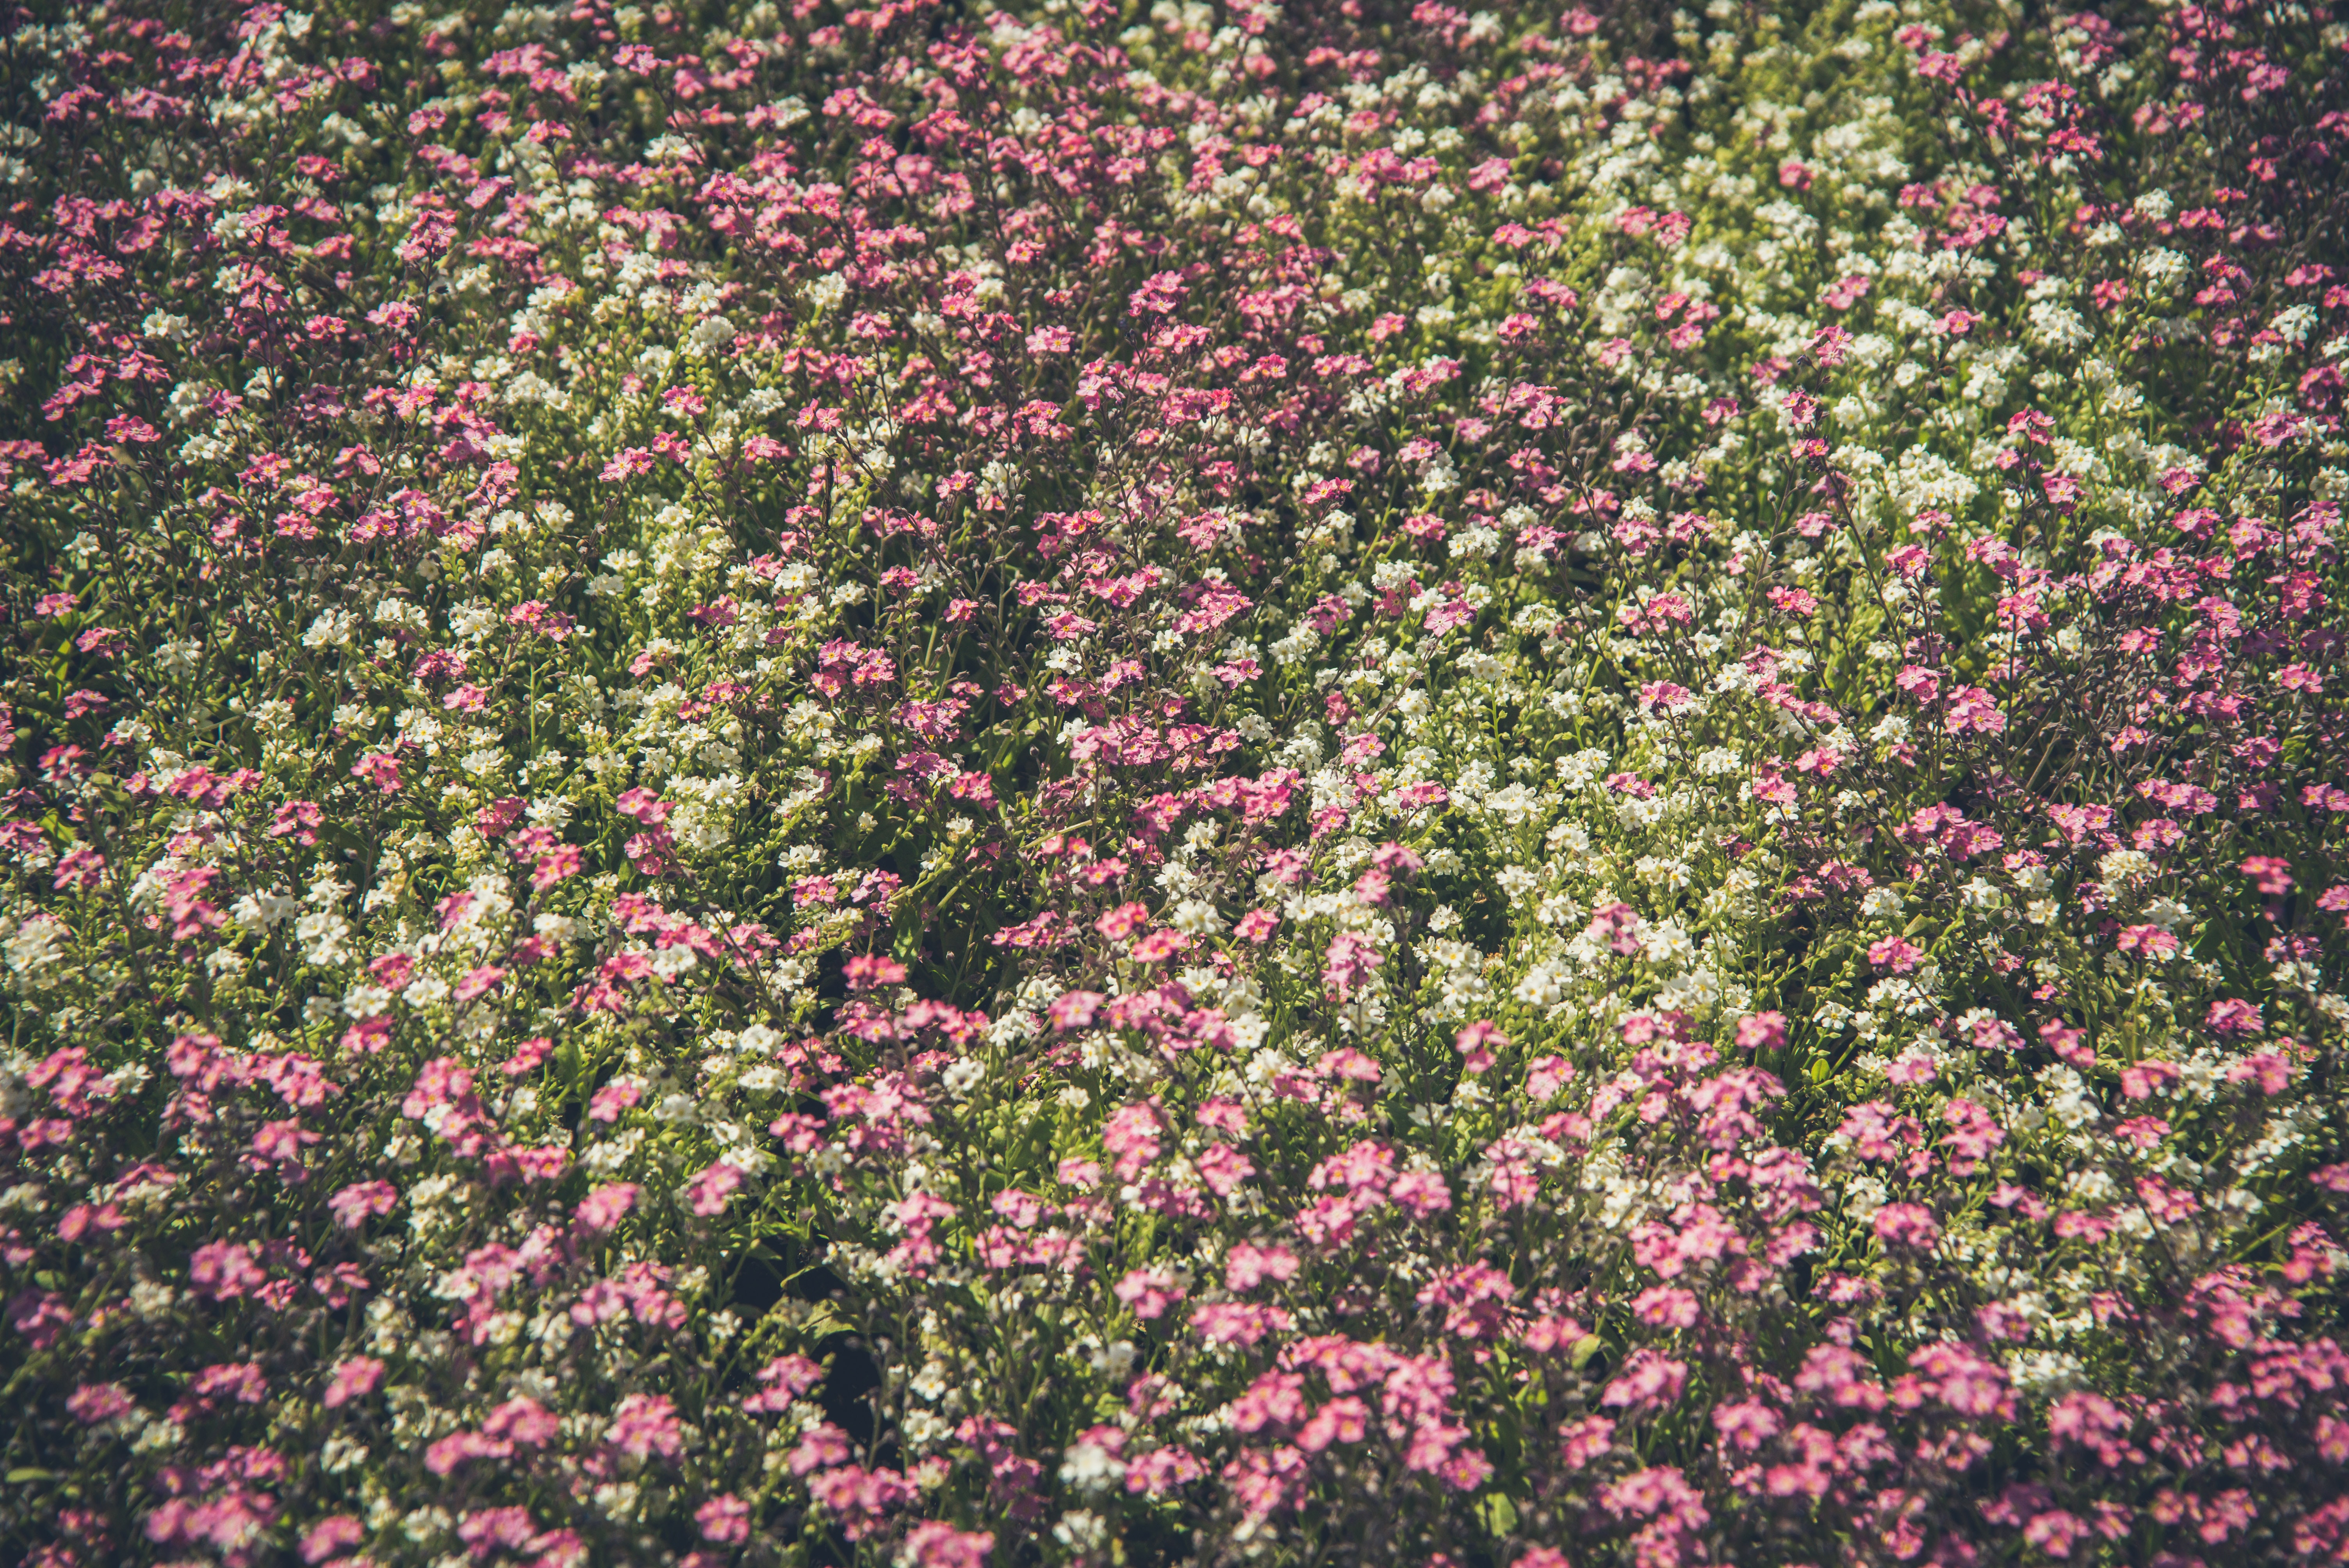 white and pink flower lot during daytime